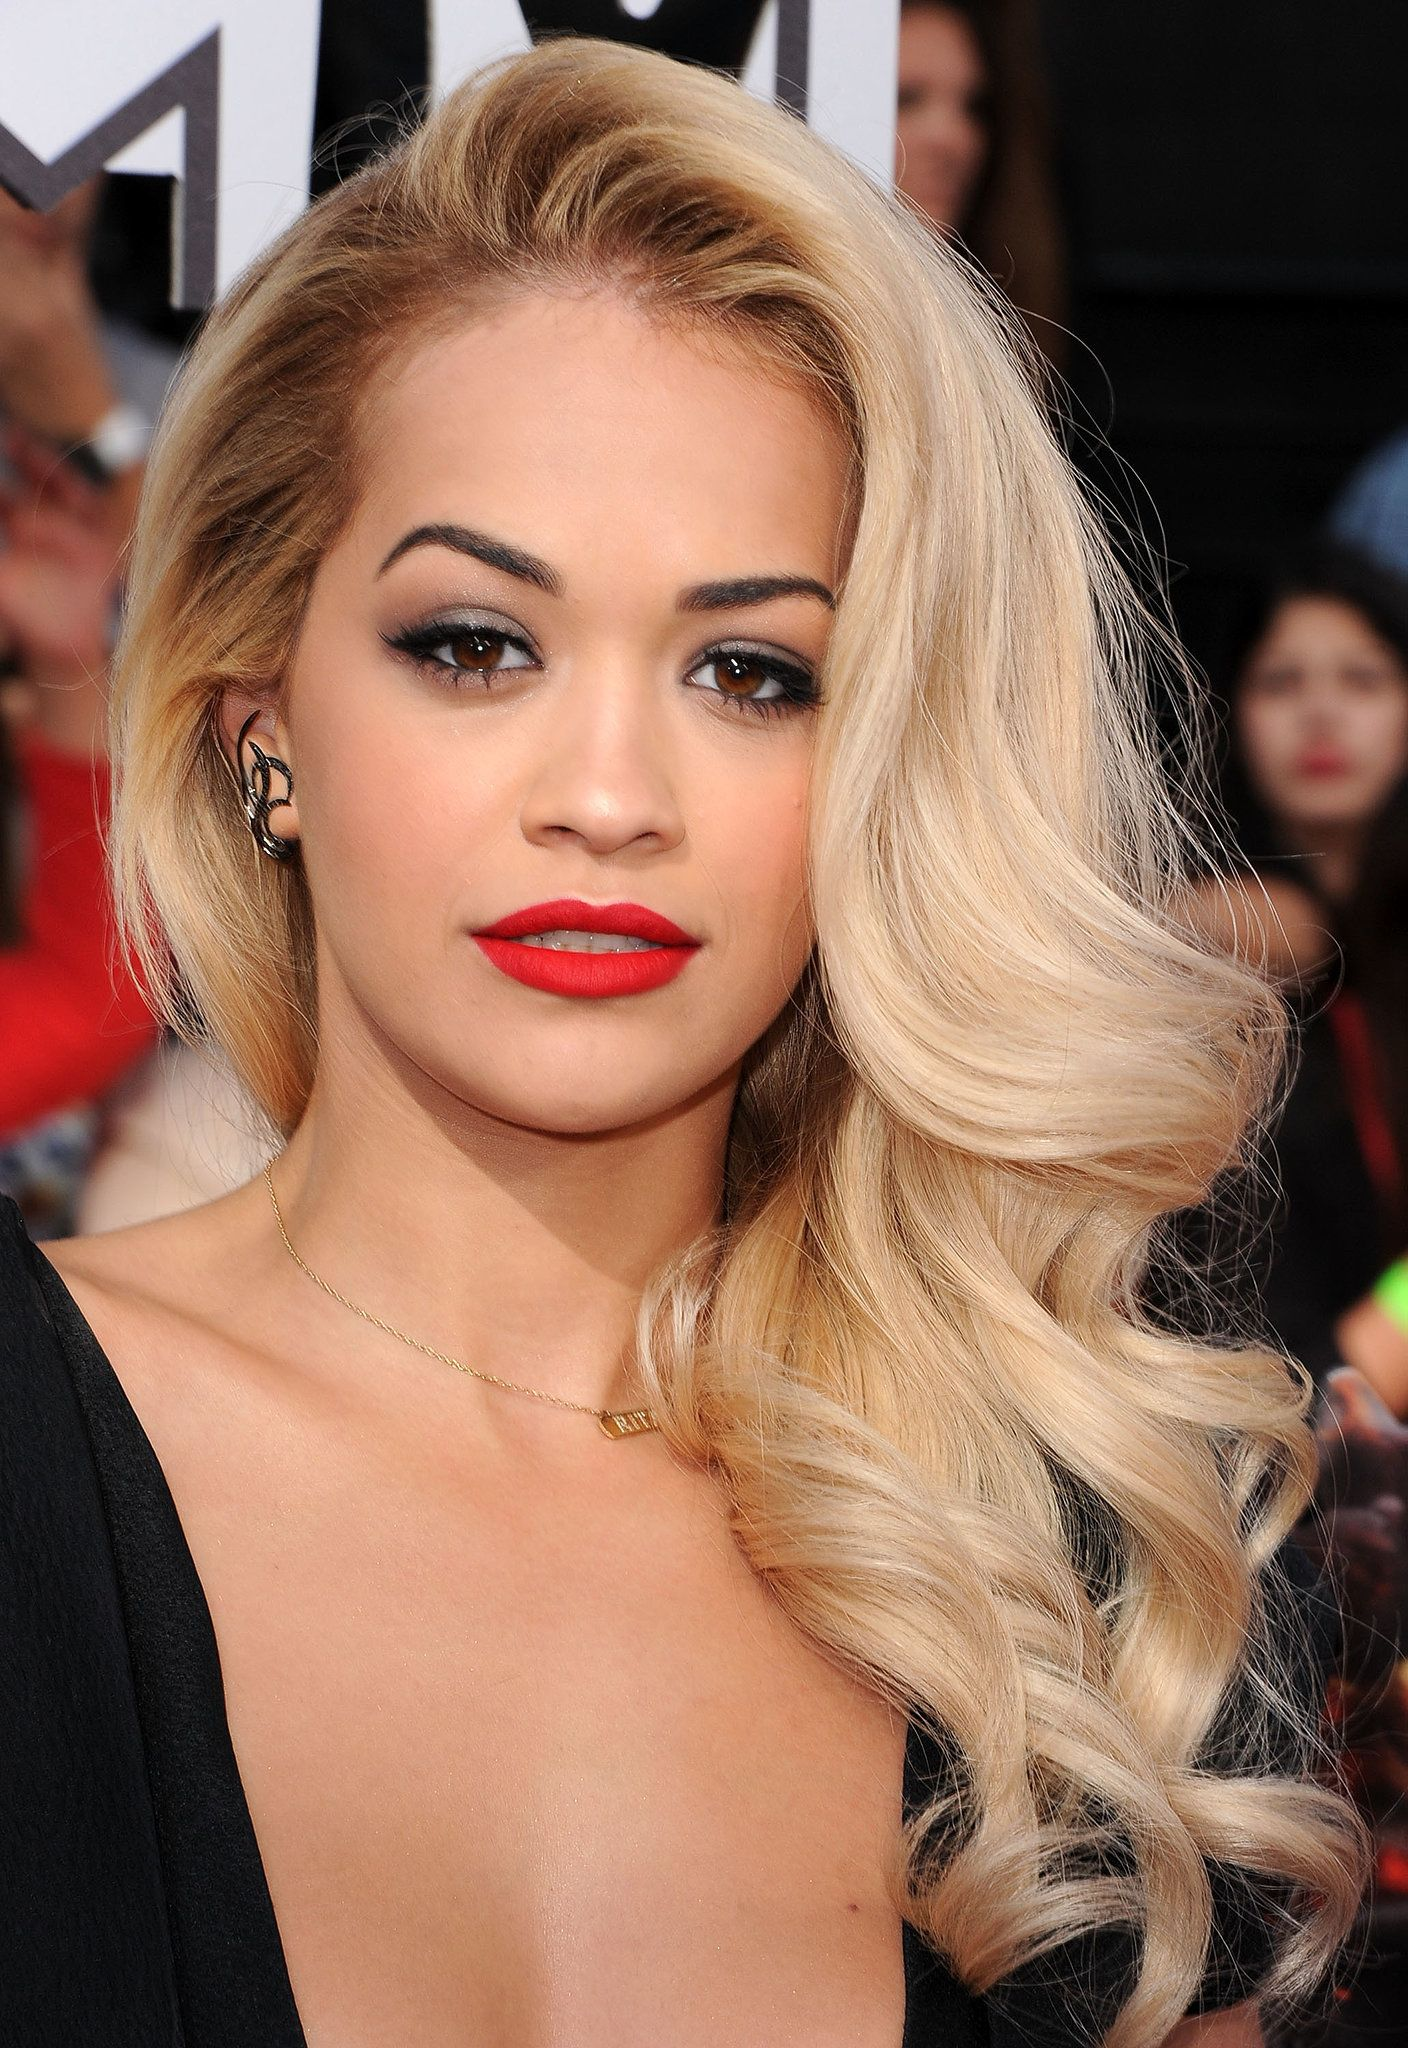 We are seeing more of this beautiful voluminous blow dry hair